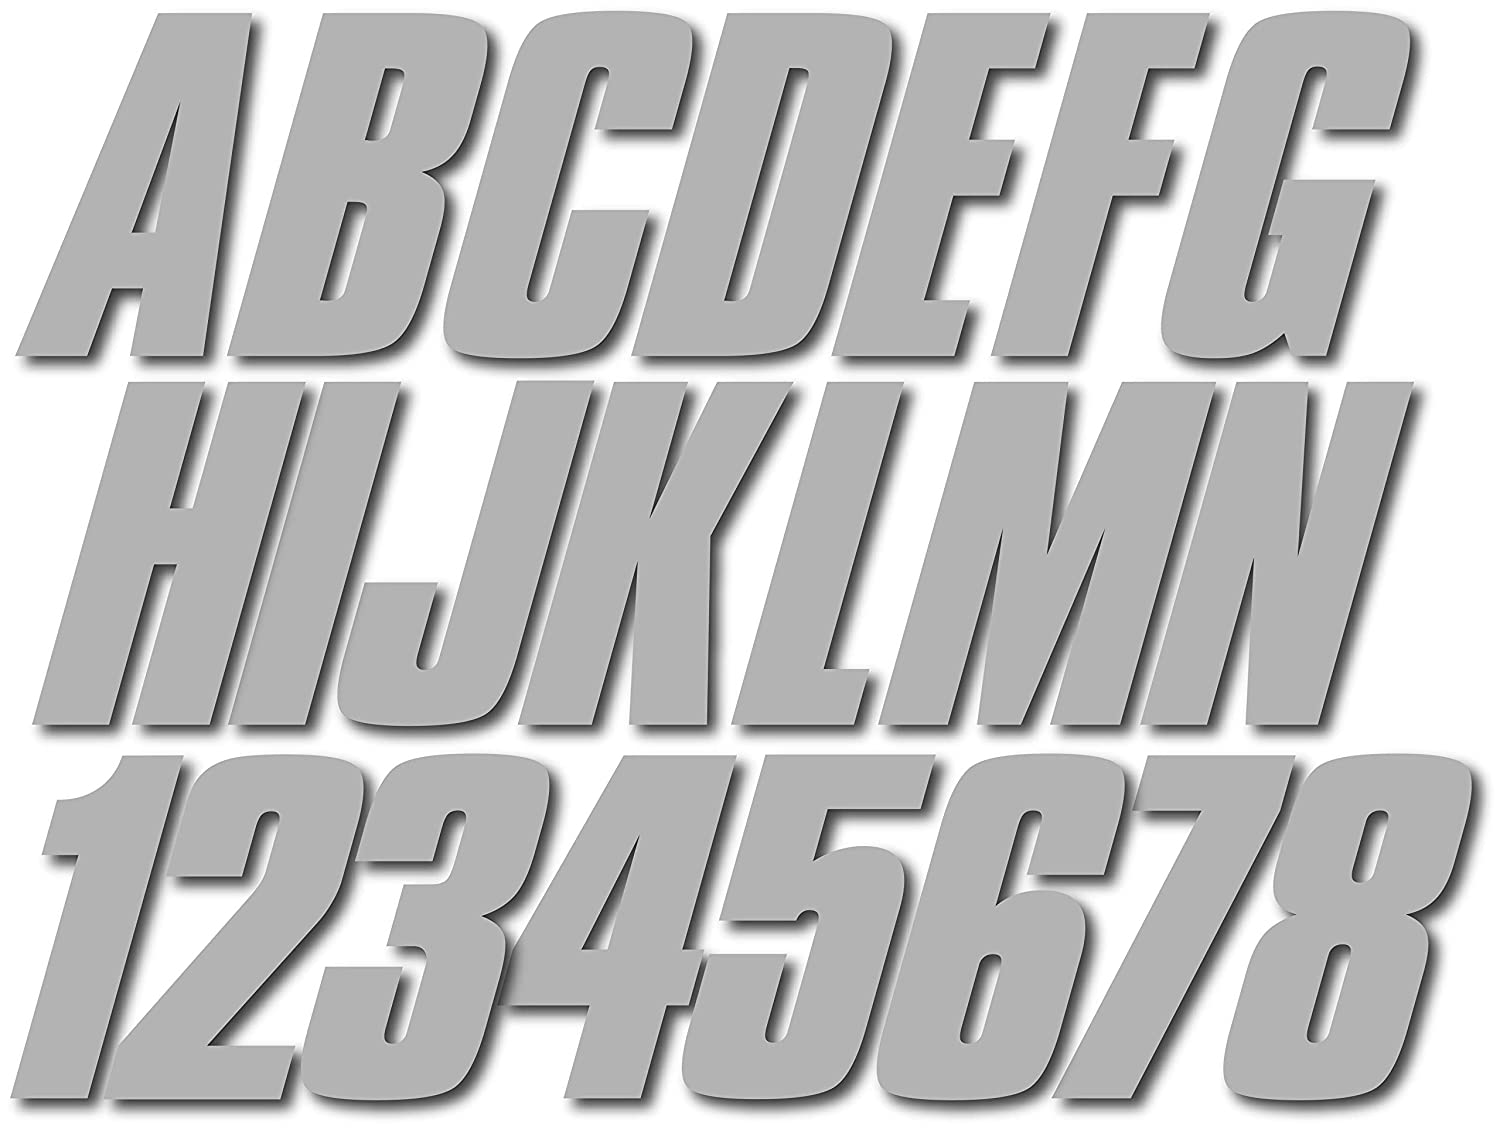 Stiffie Shift Silver 3 ID Kit Alpha-Numeric Registration Identification Numbers Stickers Decals for Boats /& Personal Watercraft